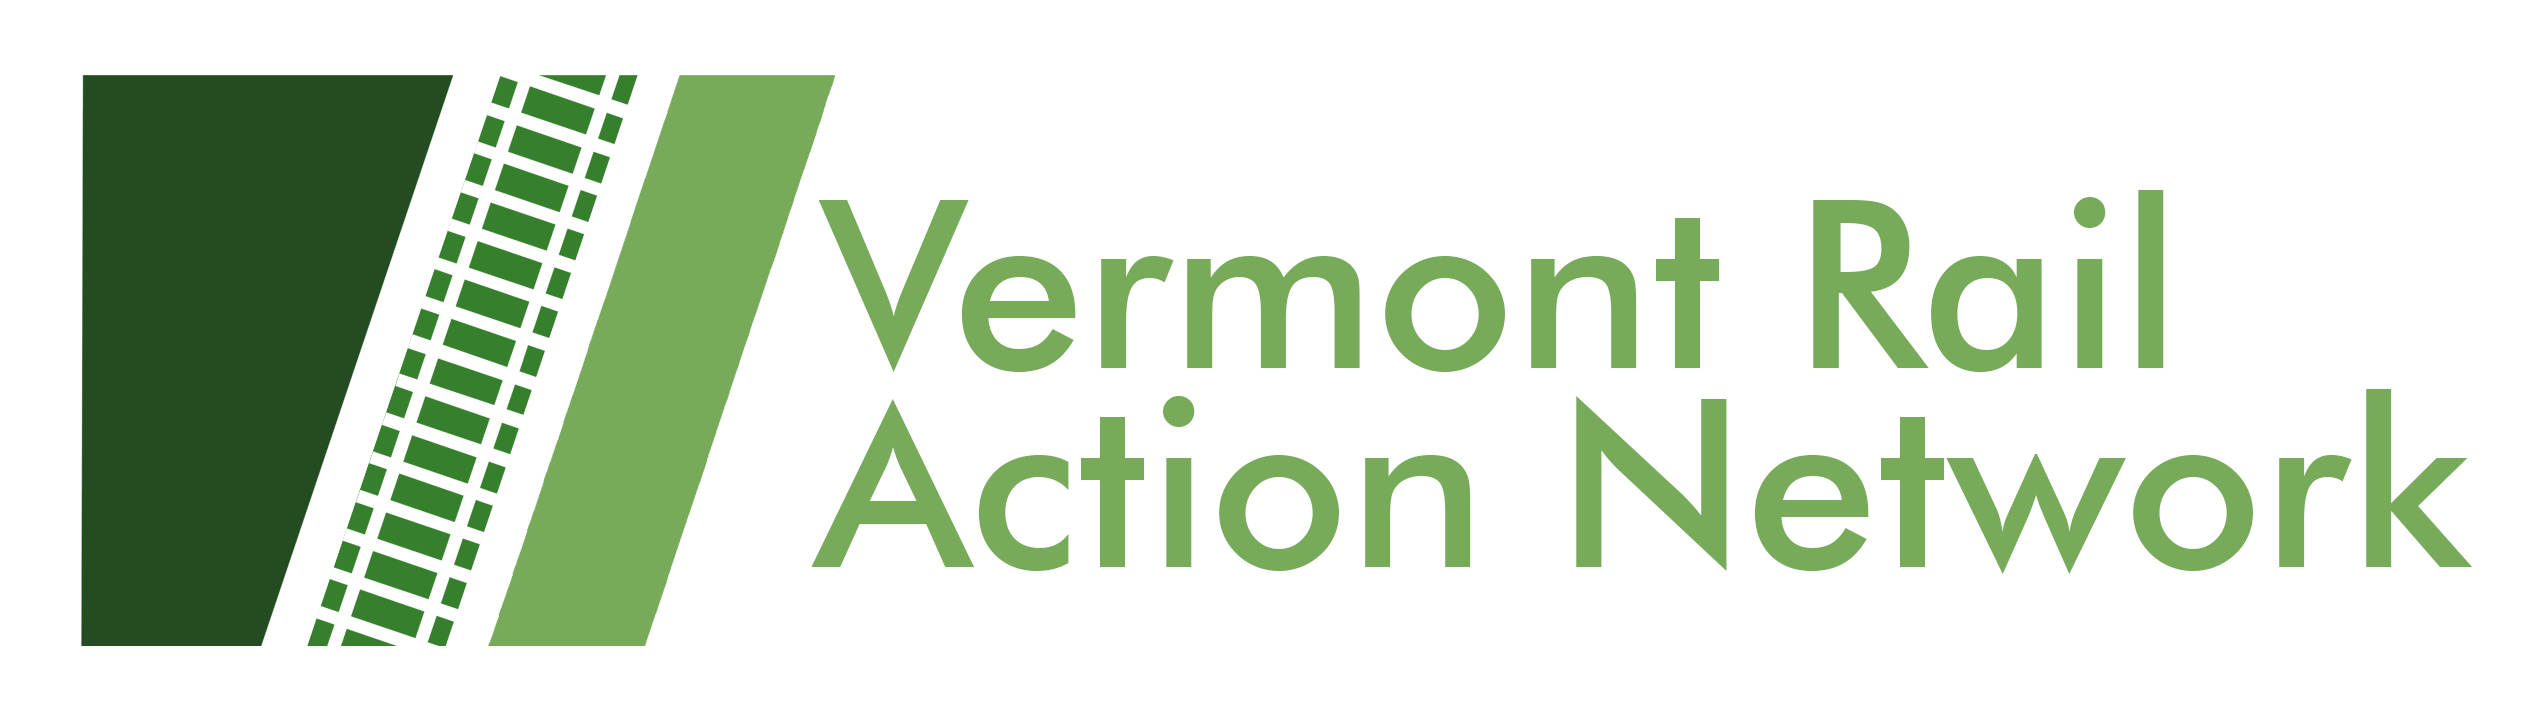 Vermont Rail Action Network